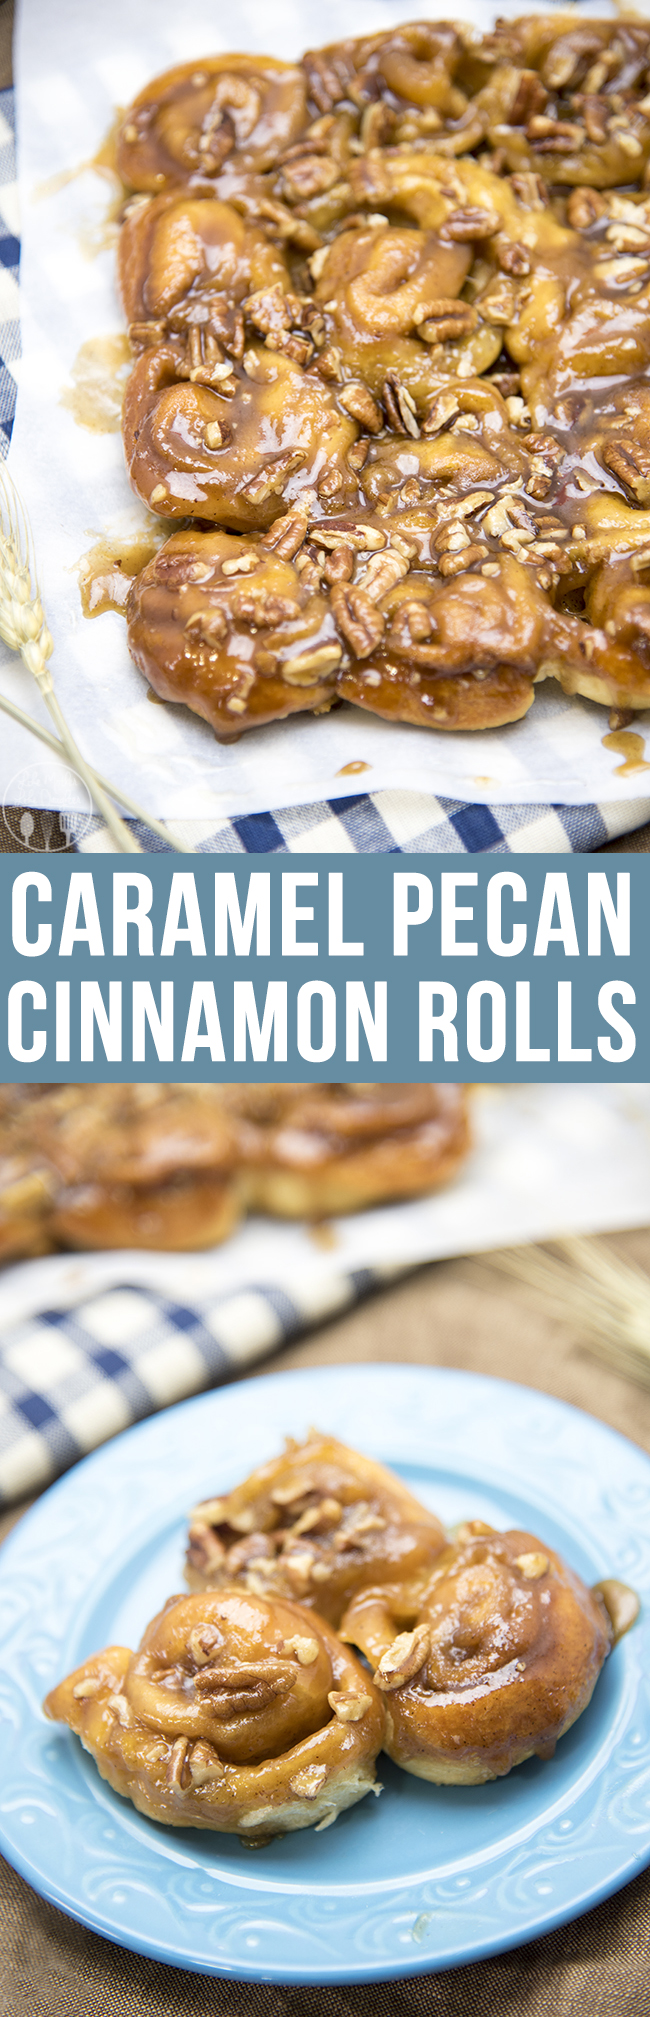 Mini Caramel Pecan Cinnamon Rolls - These delicious mini cinnamon rolls are topped with an ooey gooey caramel pecan topping. They're only 6 ingredients, so easy to make and perfect for breakfast or a dessert!